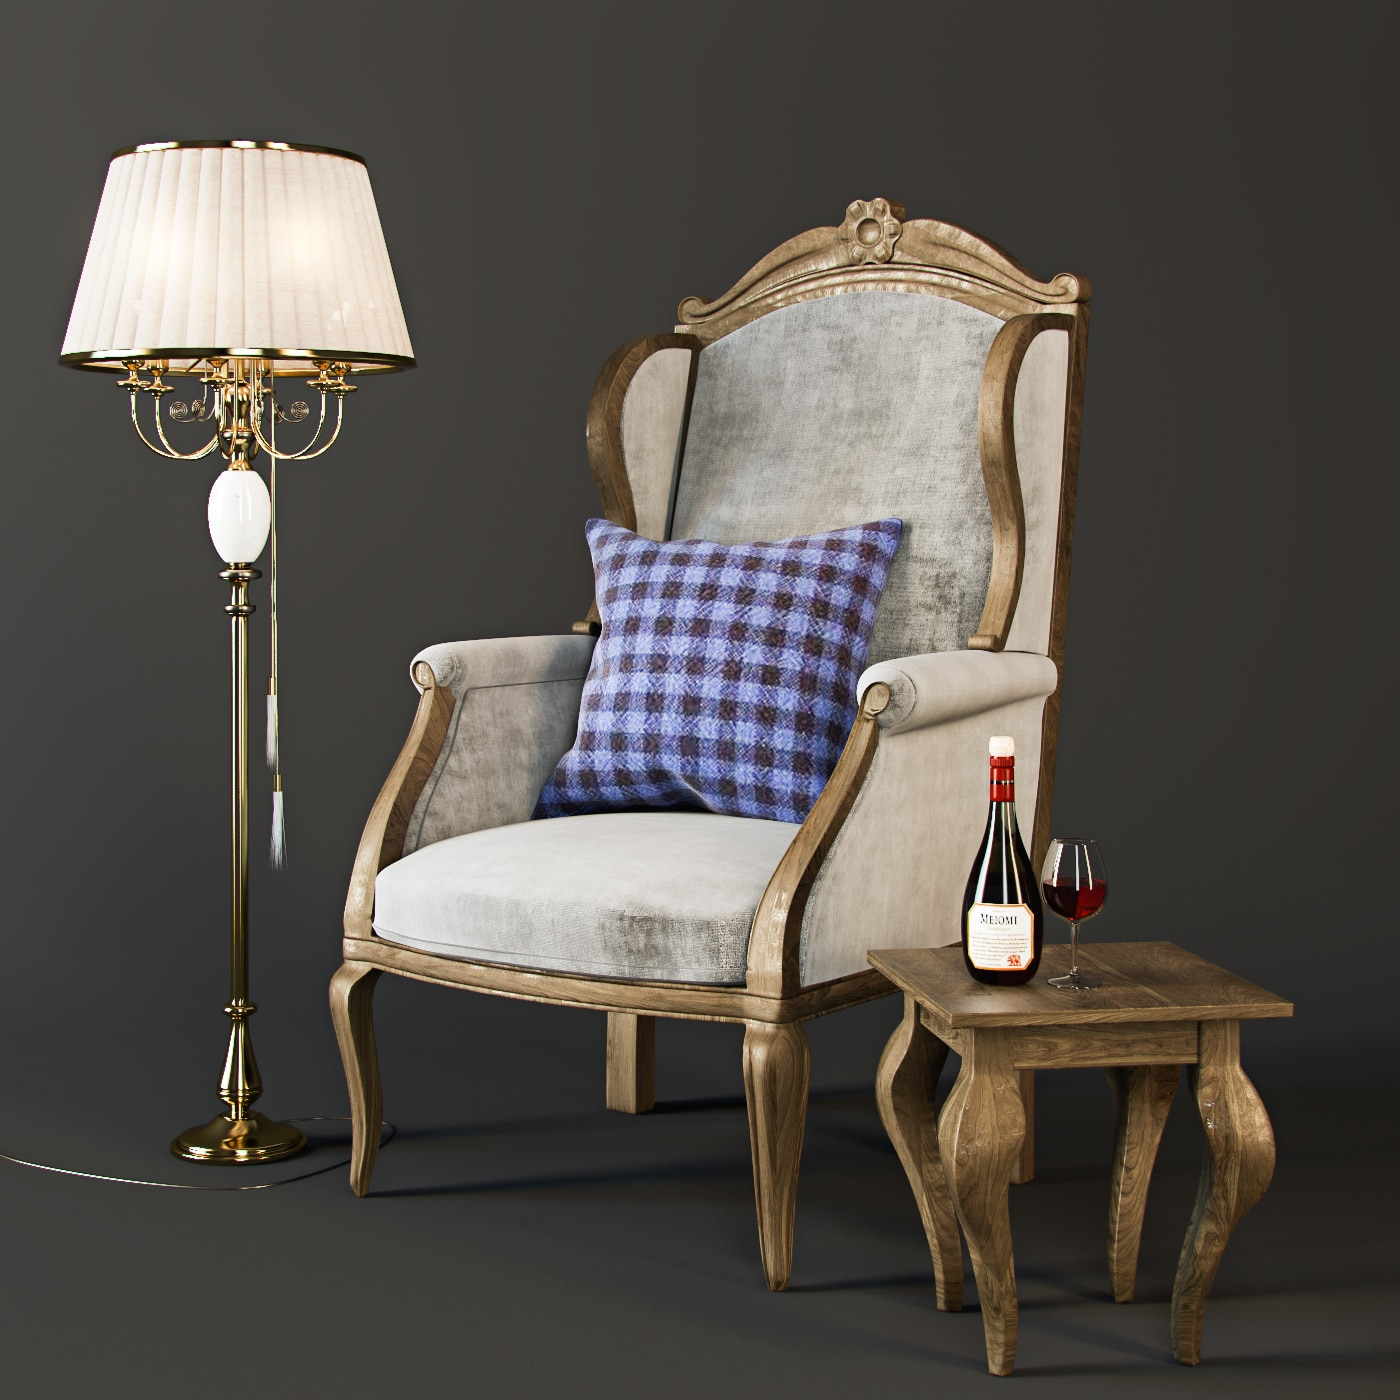 Armchair with decor 3.1